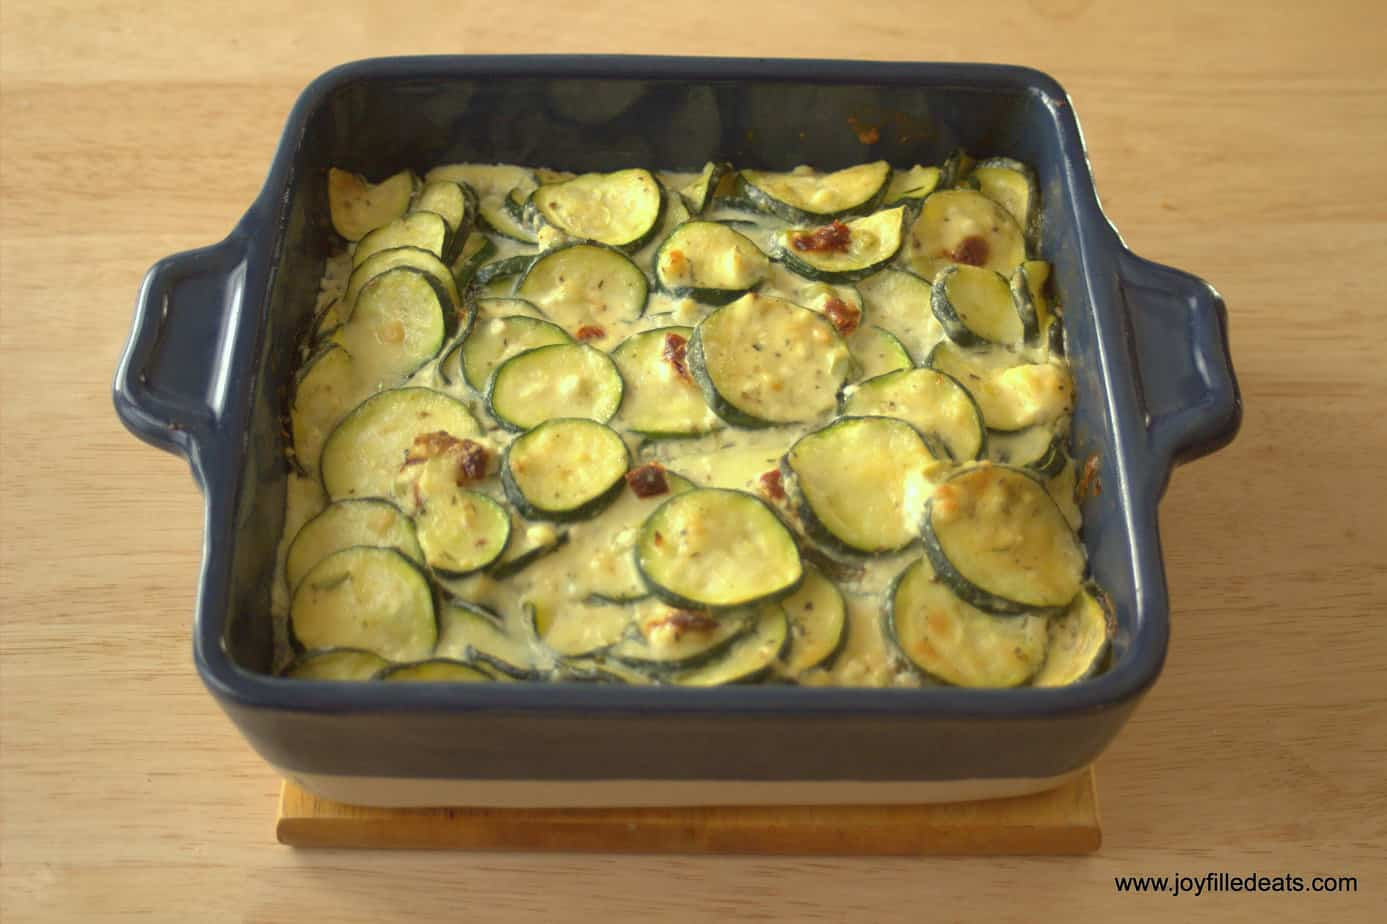 Zucchini Gratin - My baked zucchini gratin has sun-dried tomato and feta cheese which give it a Mediterranean vibe. It is grain free, low carb, and a THM S.